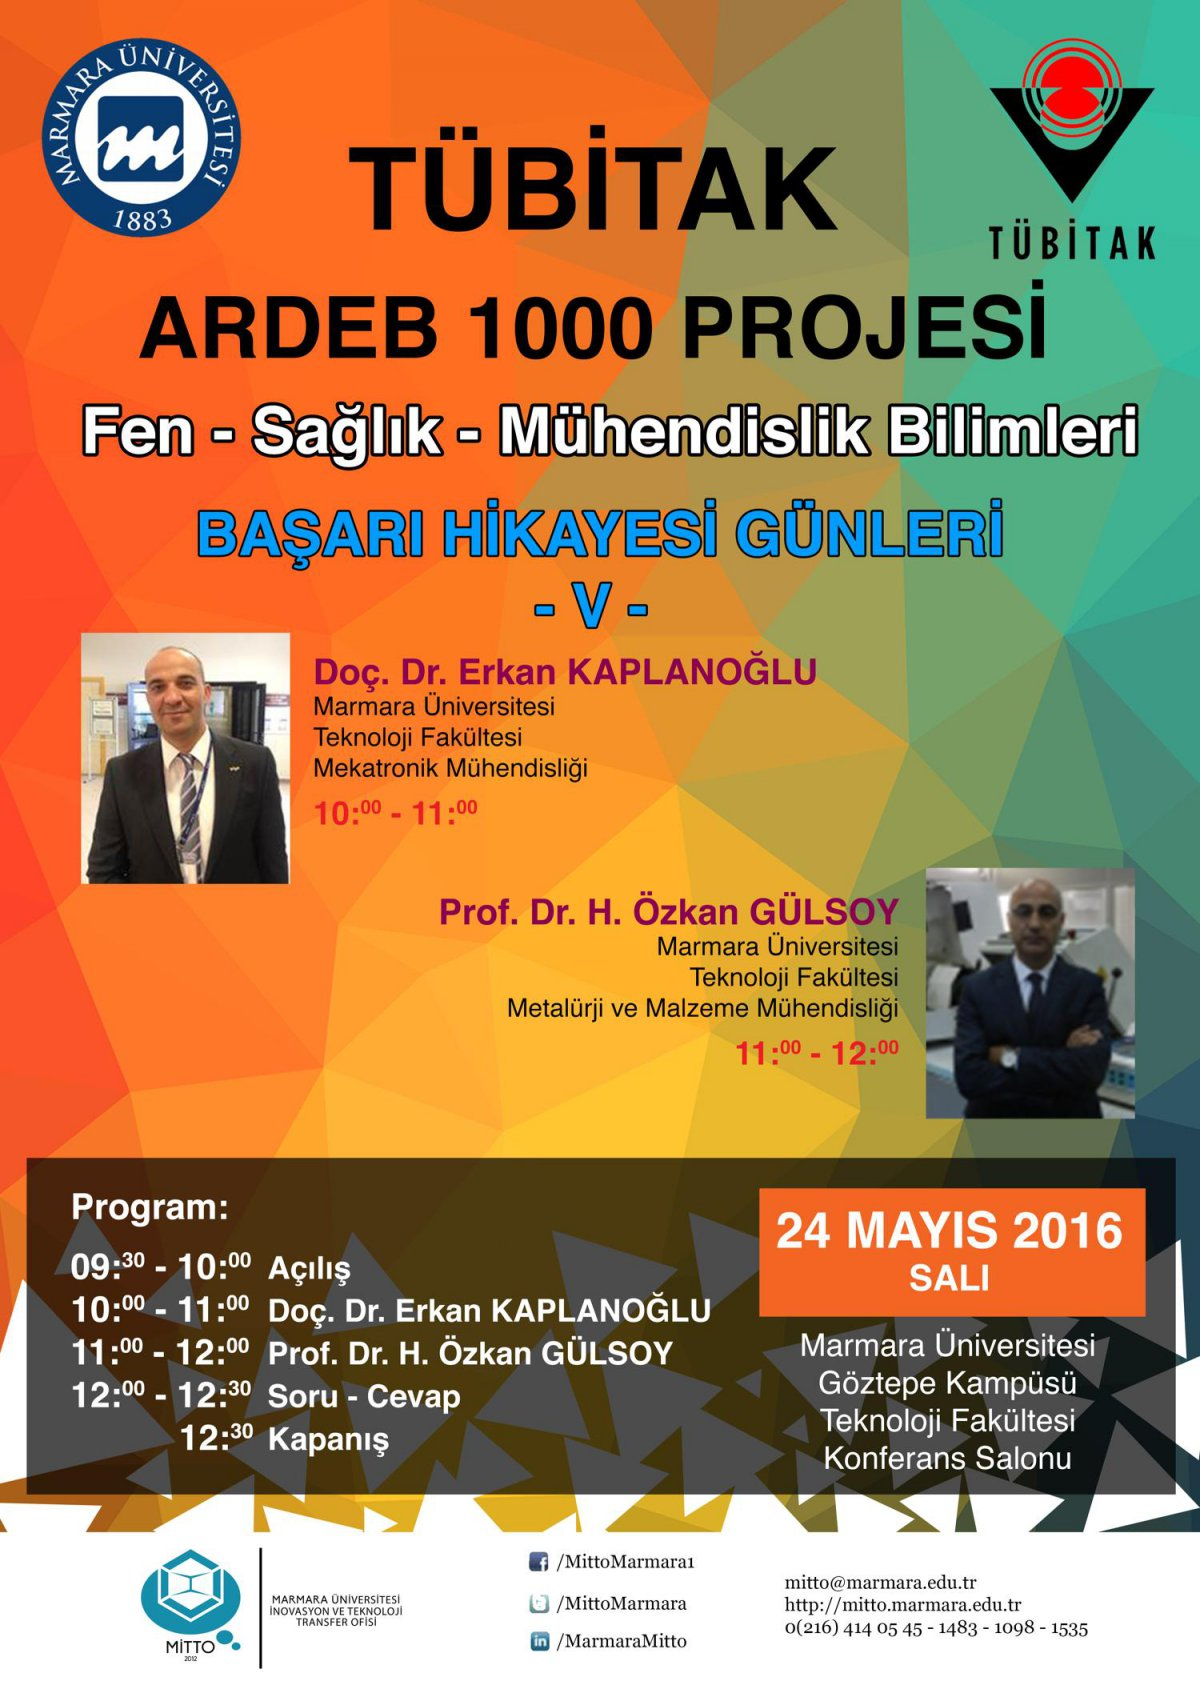 The Success Stories Dates Event of Tubitak ARDEB 100 Project Was Performed